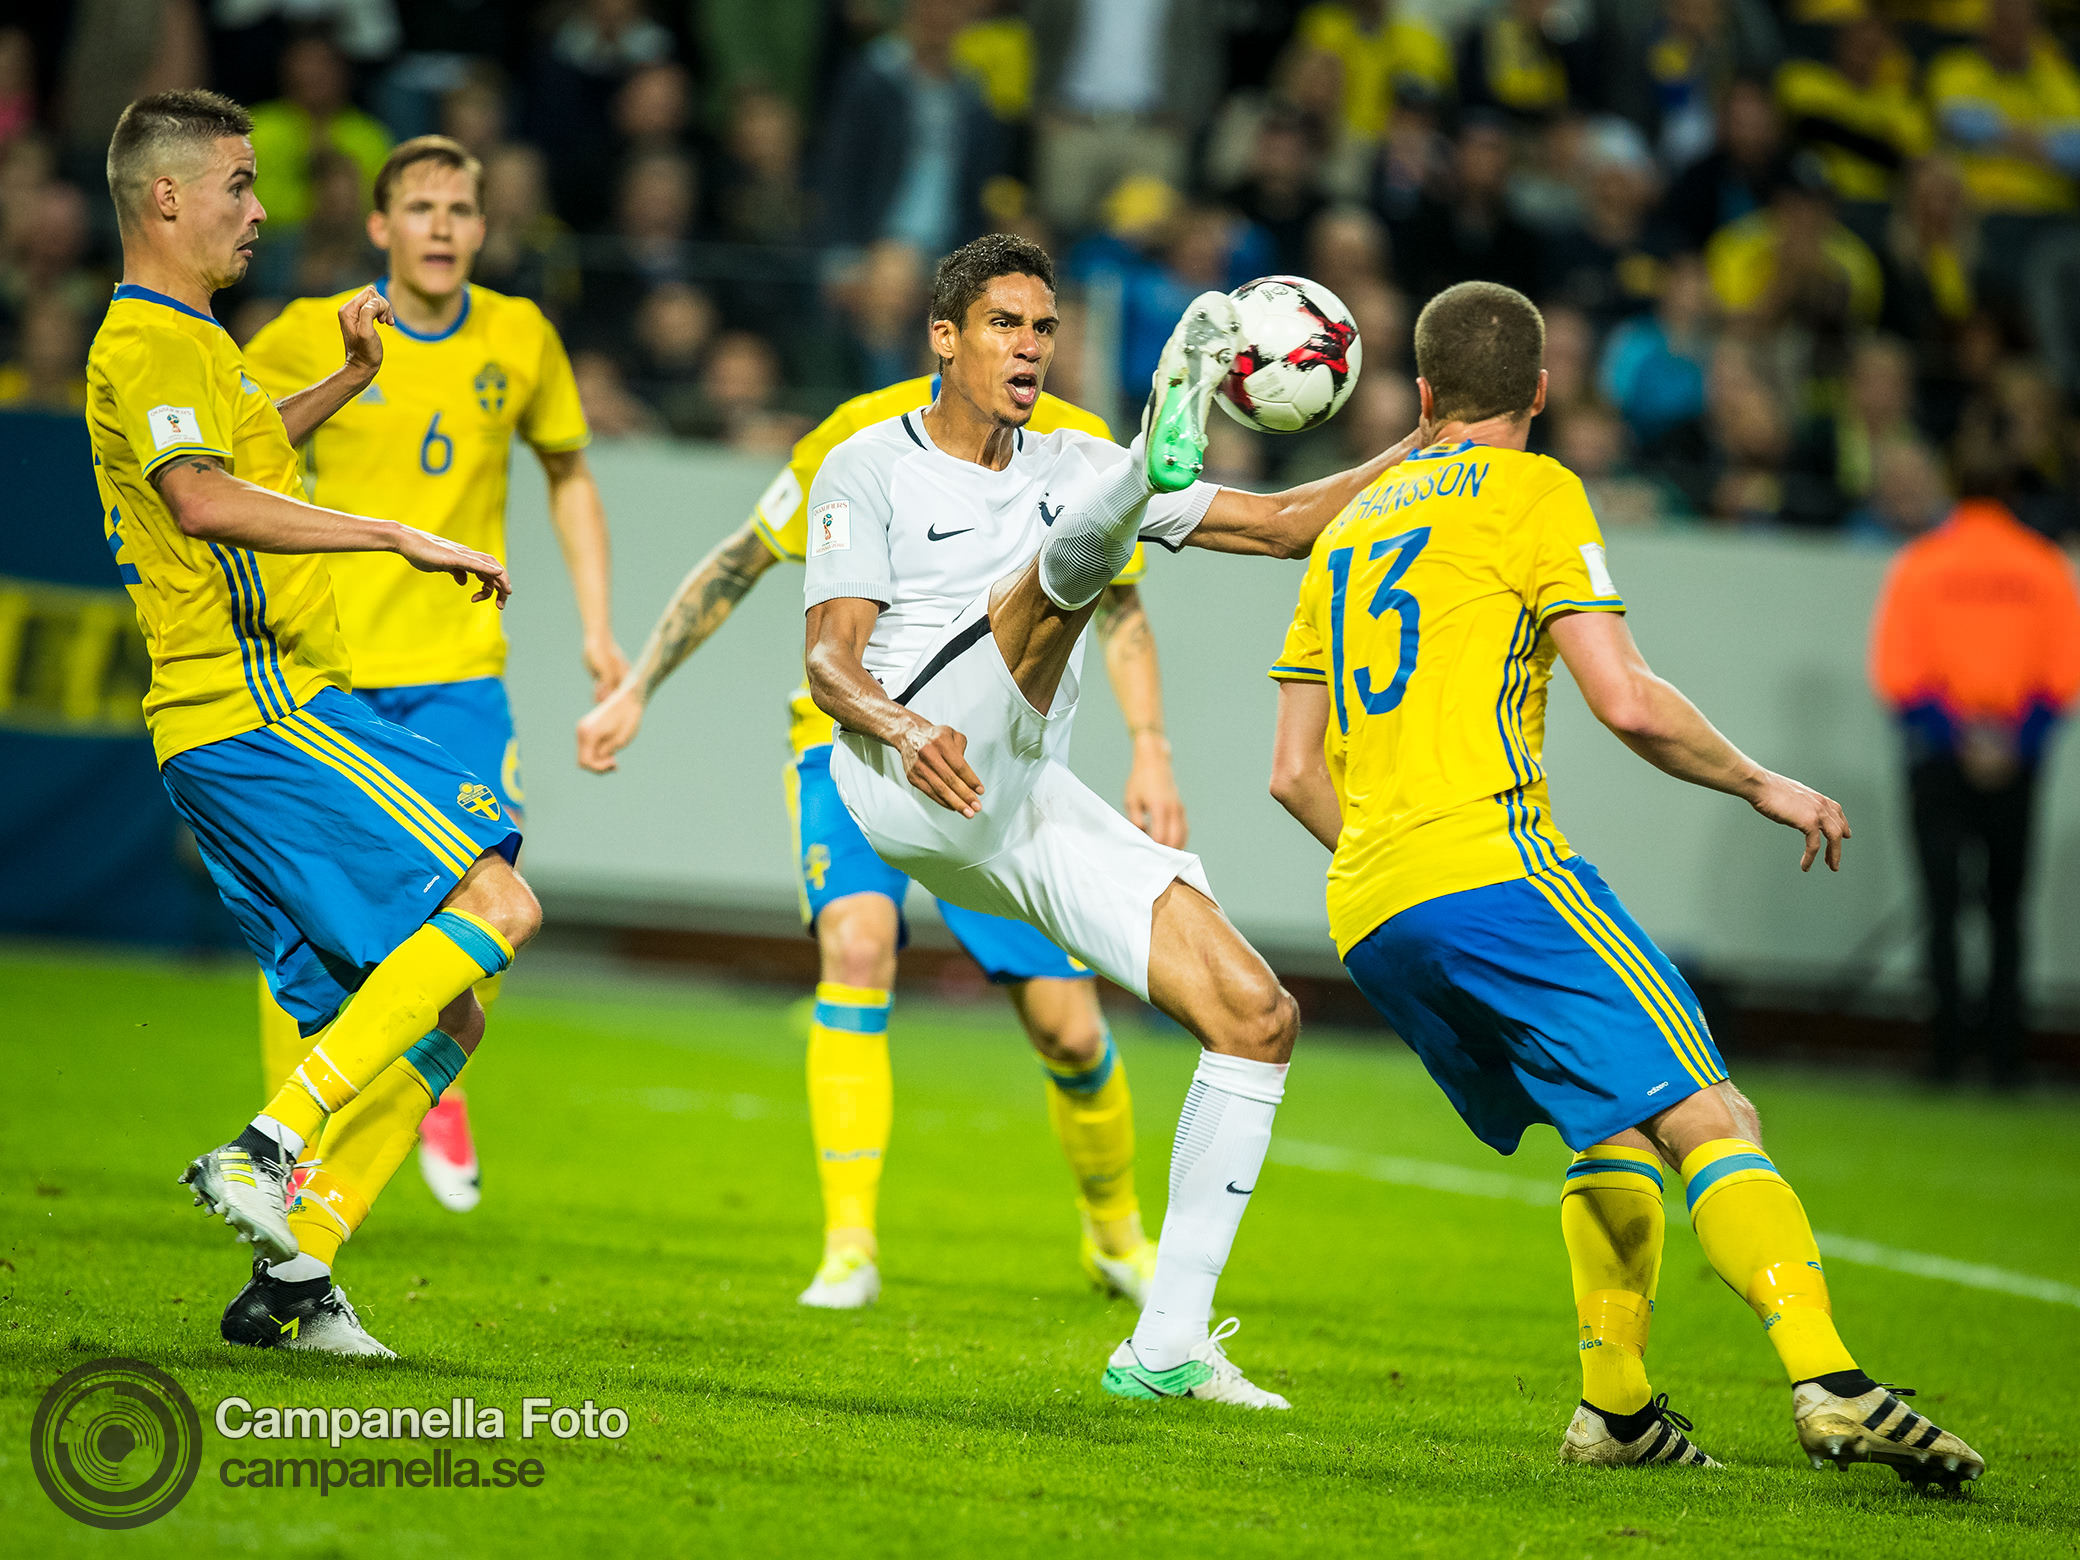 Sweden shocks France with last minute winner - Michael Campanella Photography